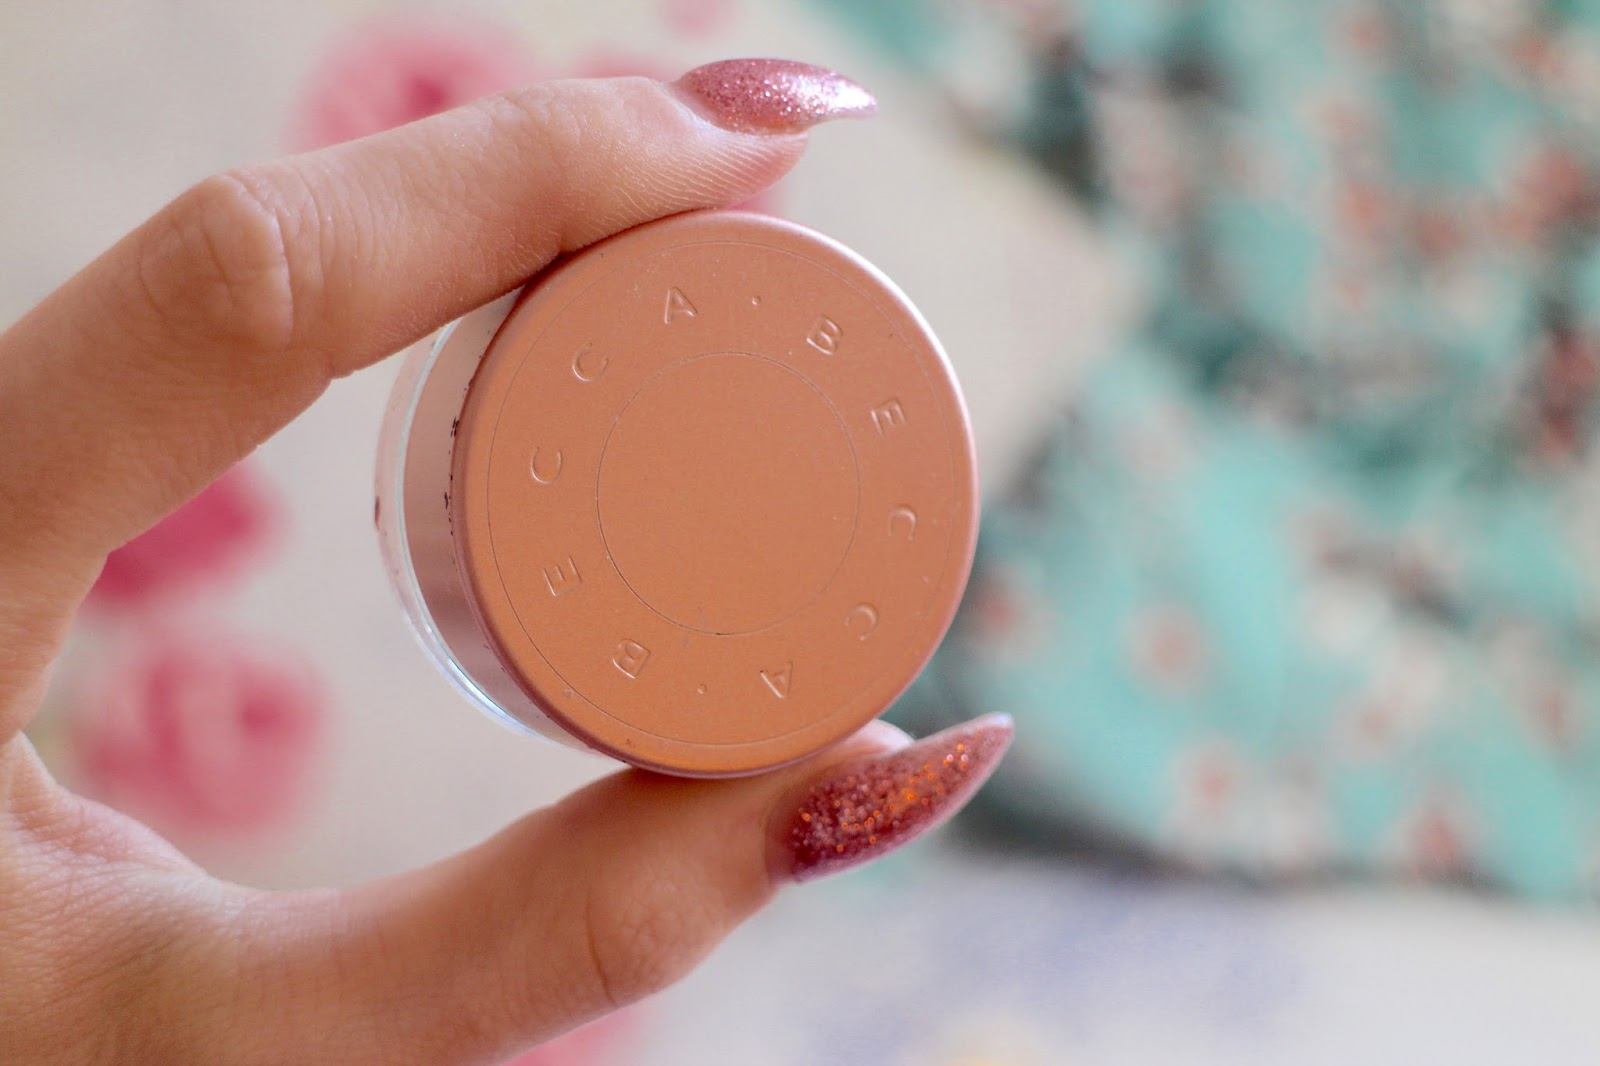 becca cosmetics eye brightener